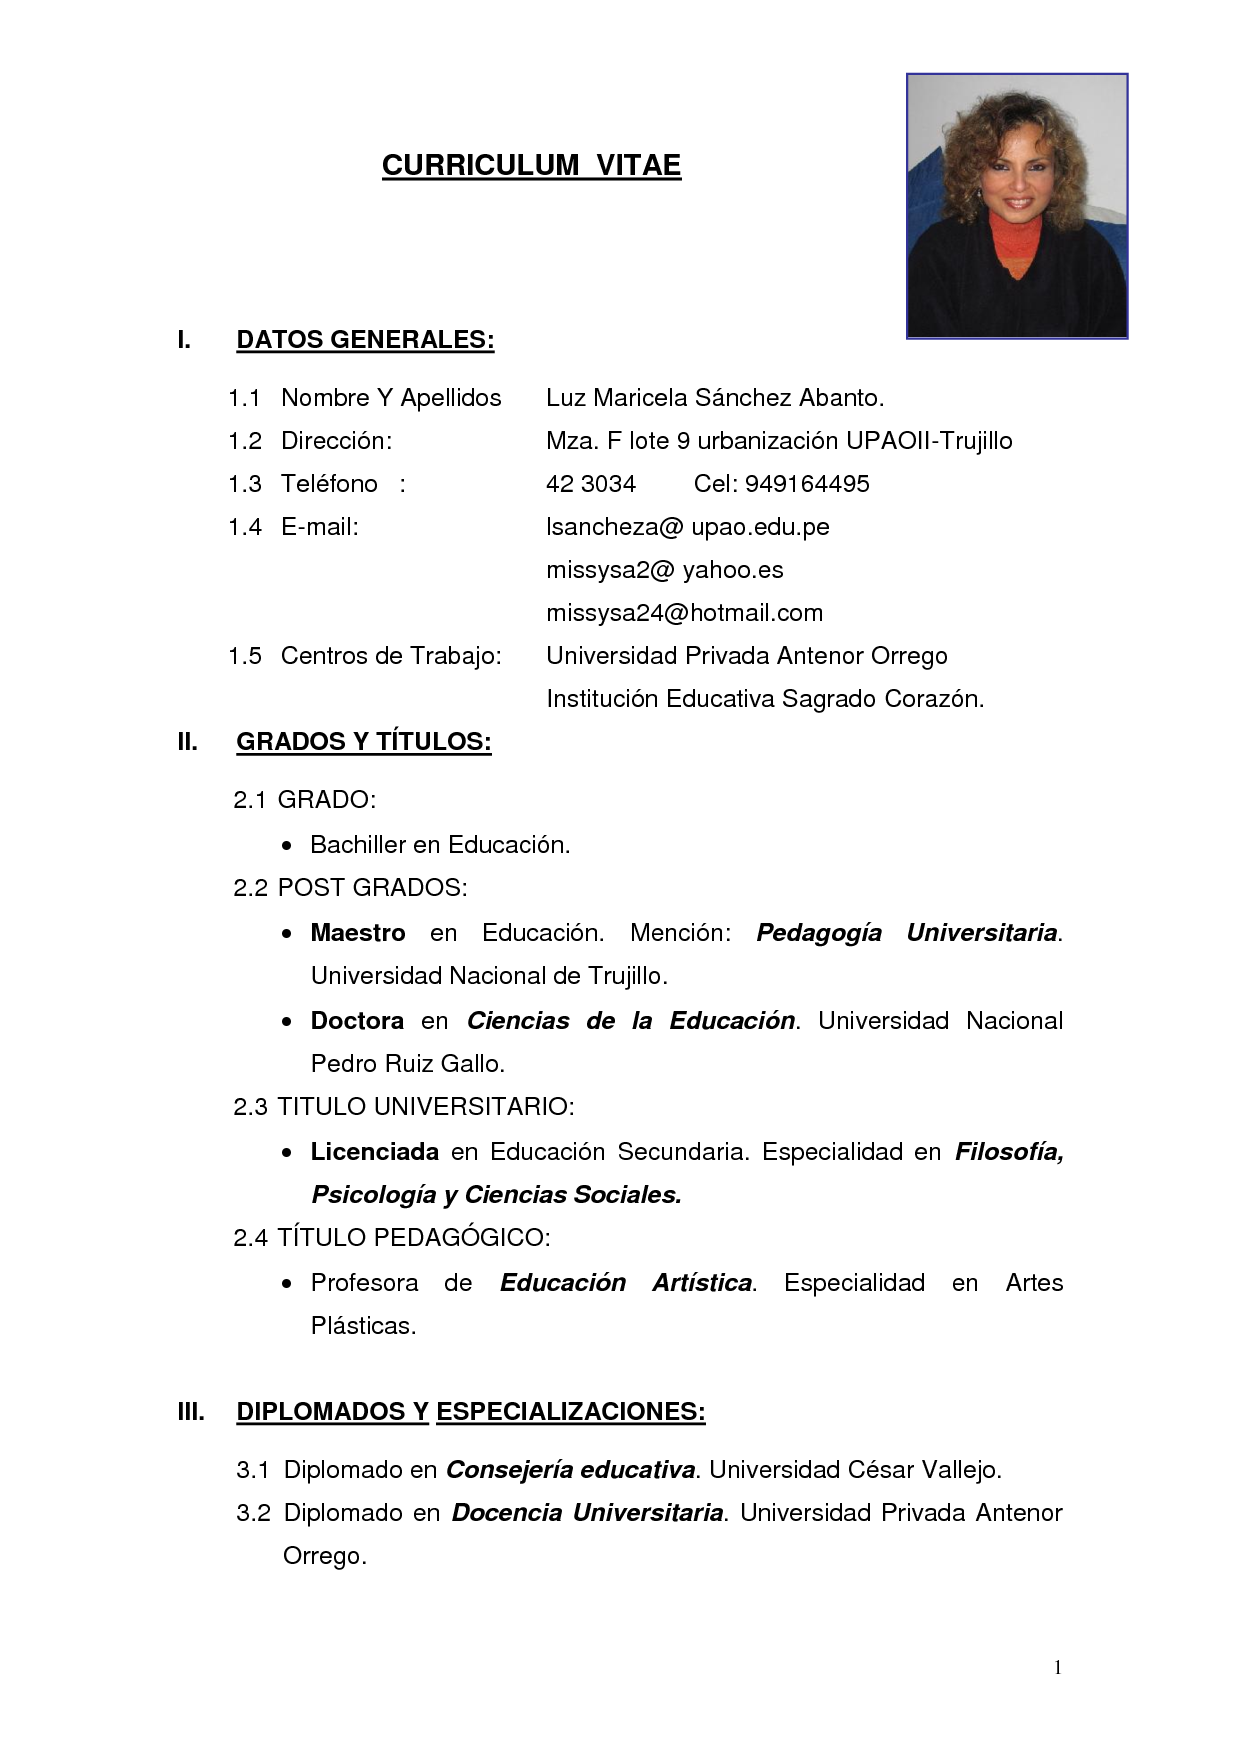 modelo de resume - Dorit.mercatodos.co